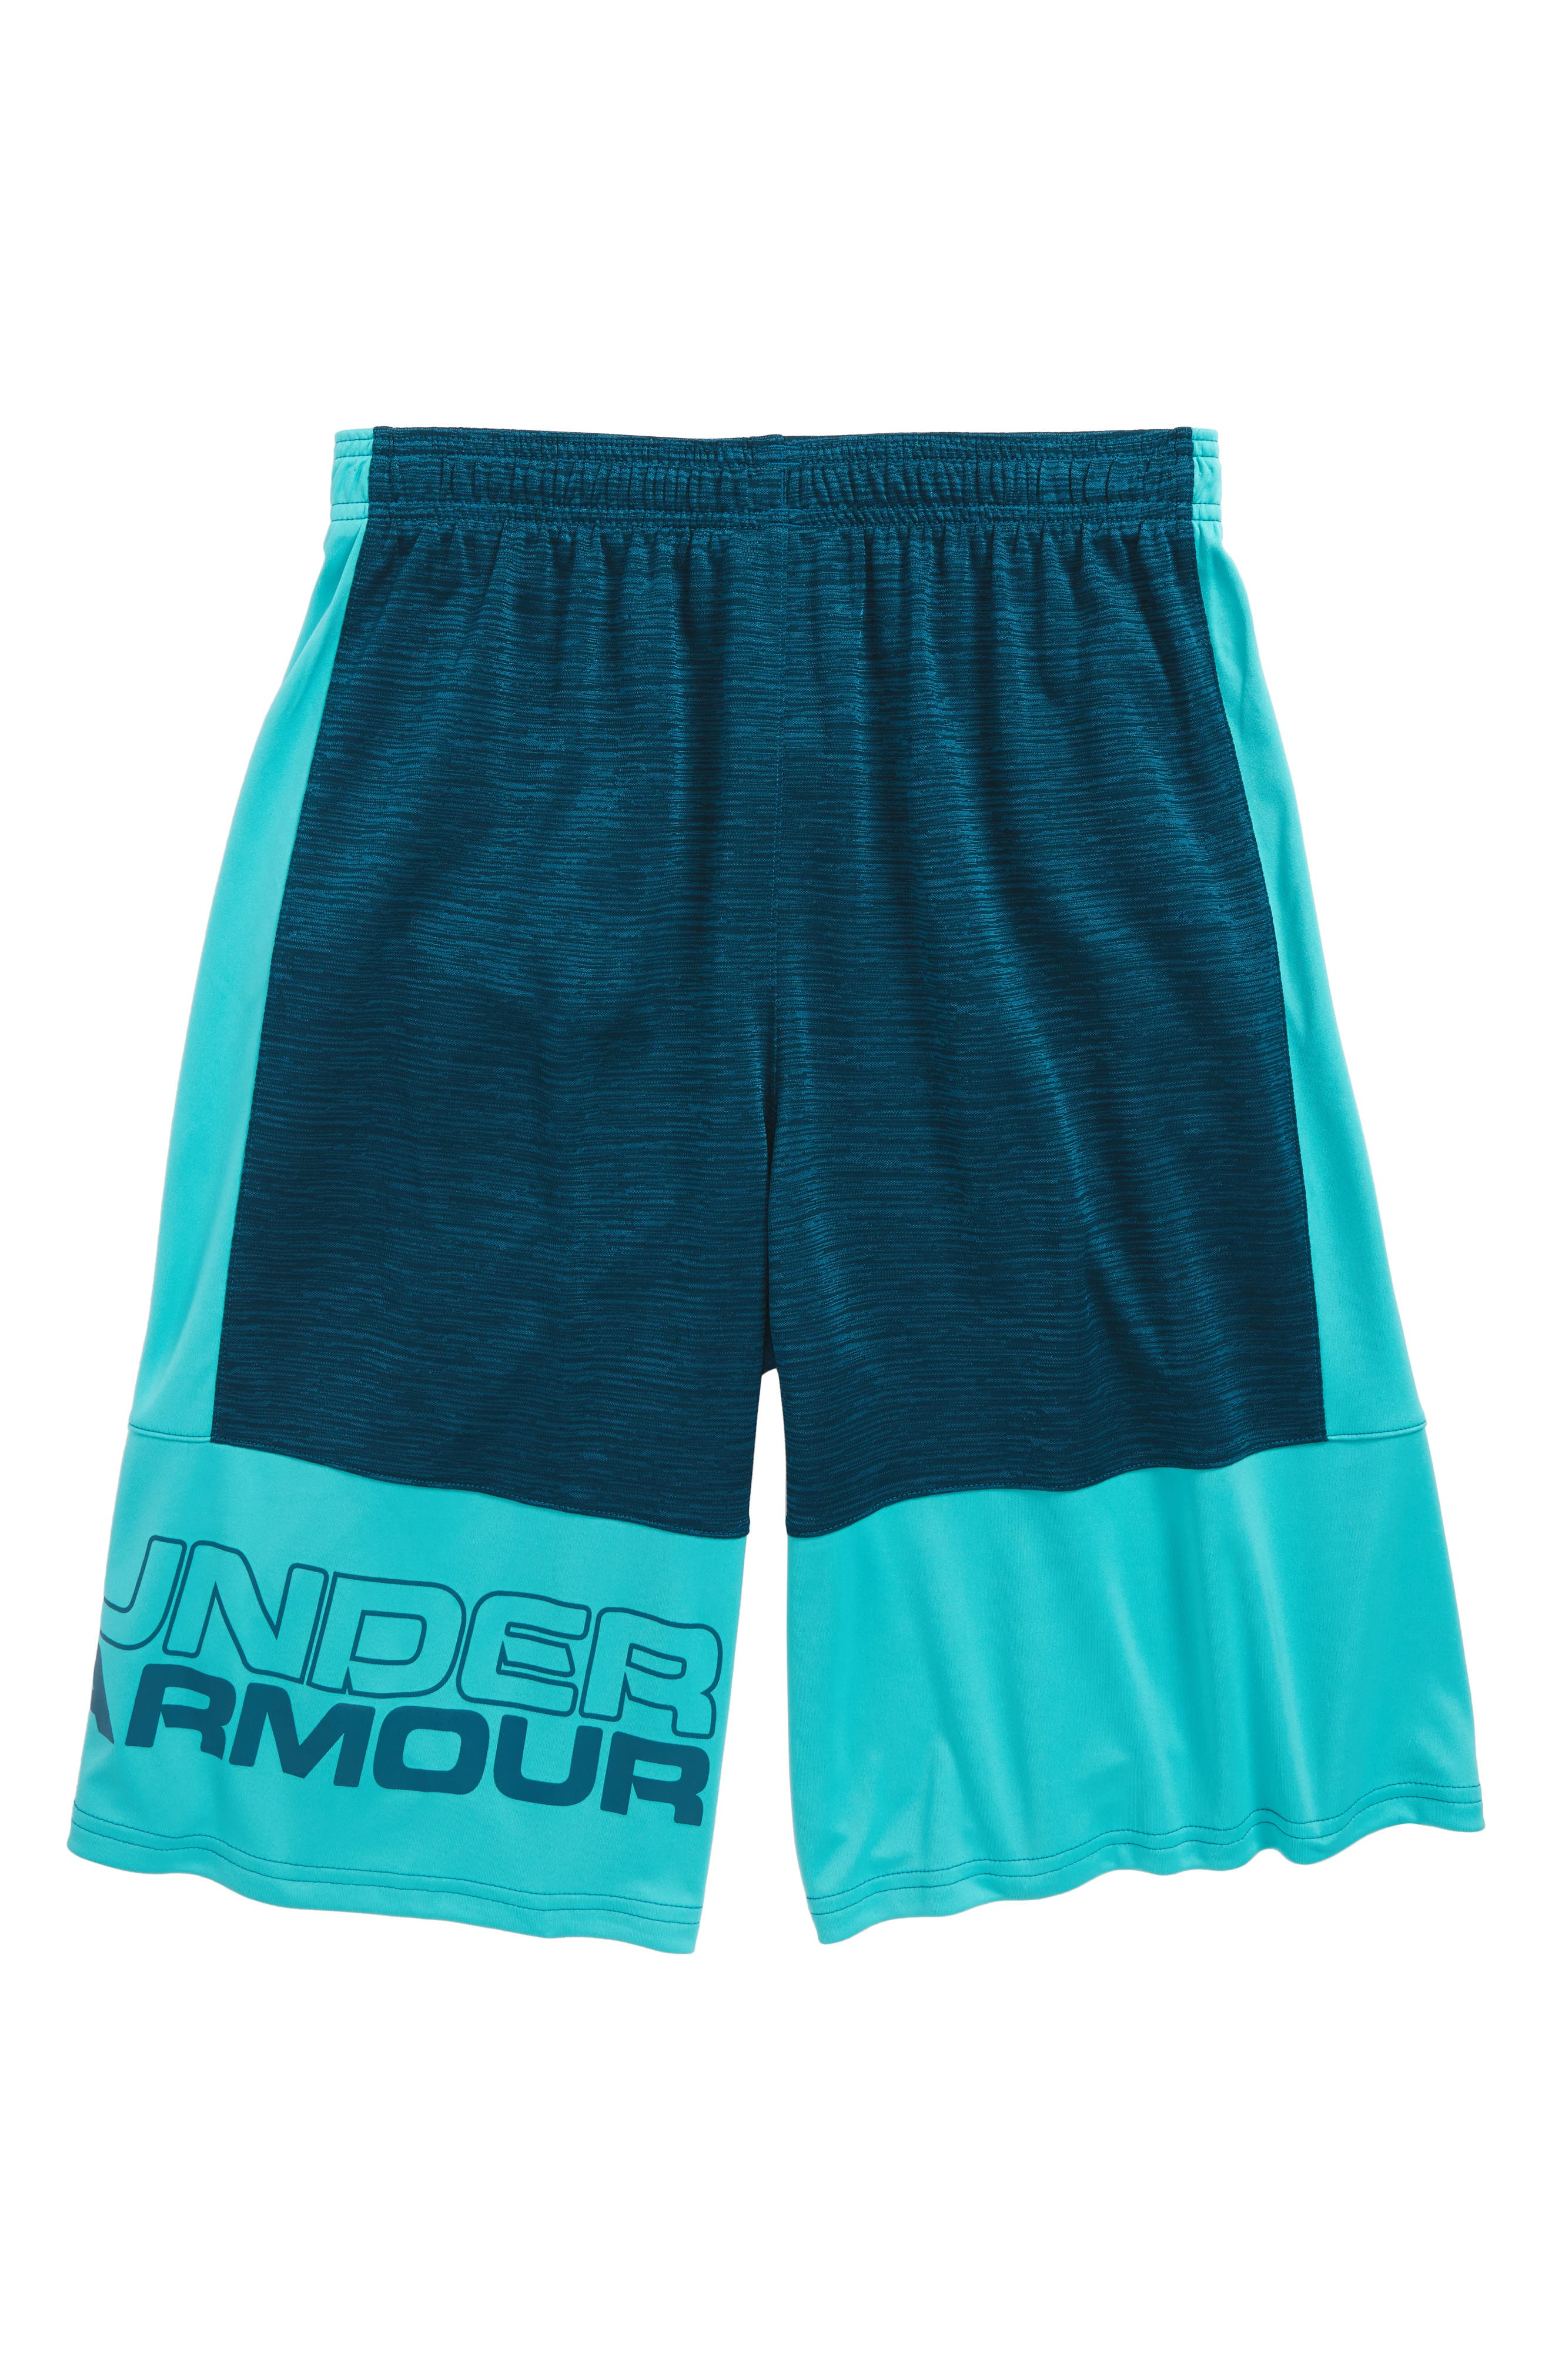 Stunt HeatGear<sup>®</sup> Shorts,                             Alternate thumbnail 2, color,                             Troumaline Teal/ Teal Punch